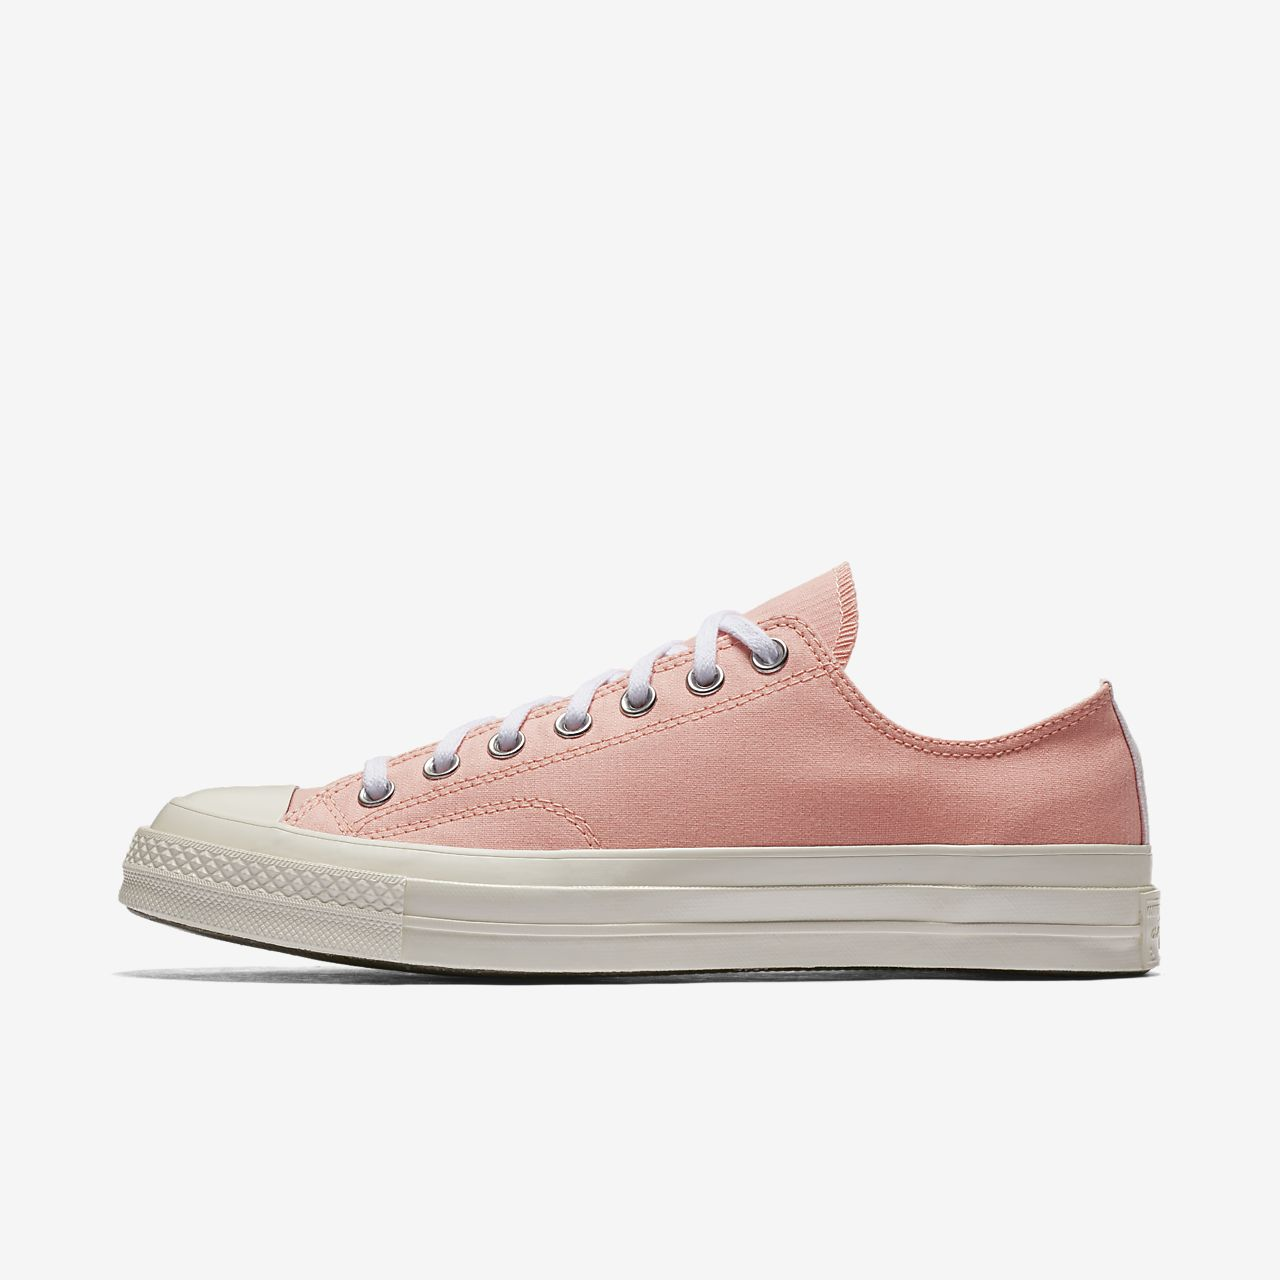 Converse Chuck 70 Stripe Chambray Low Top Unisex Shoe